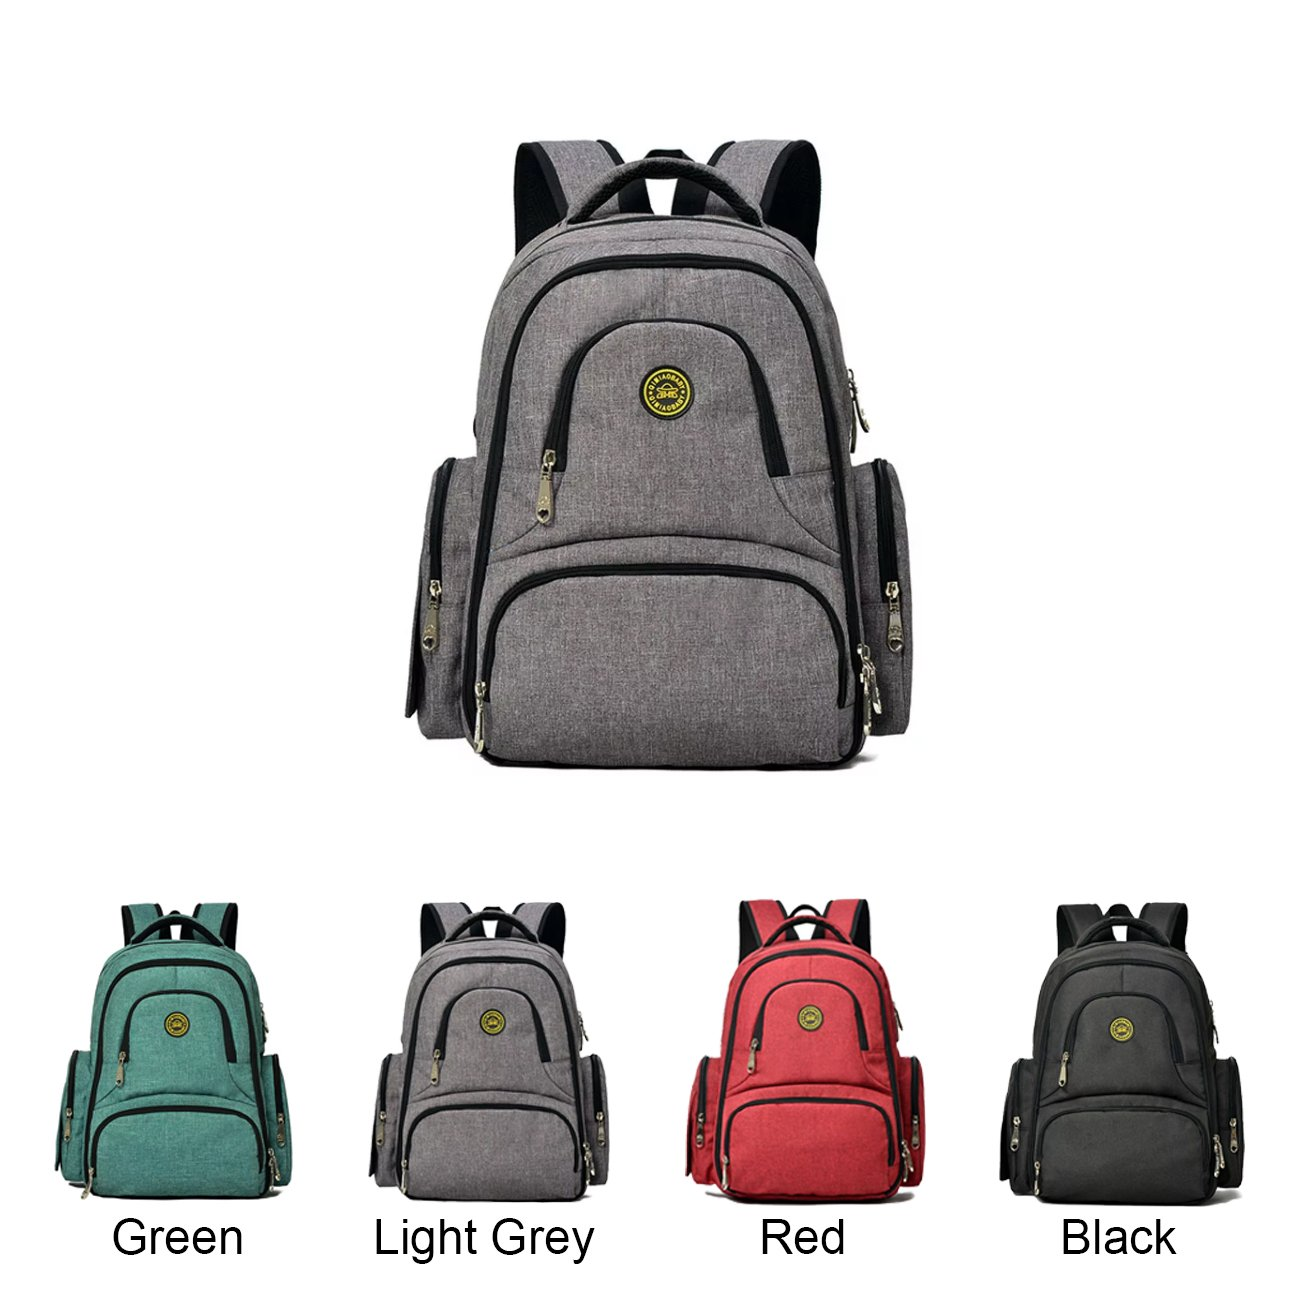 Queenie - Baby Waterproof Polyester Cotton Diaper Backpack Multi- function Travel Backpack Nappy Bag Travel Organizer For Men & Women (QM1490-1 Light Grey) by Queenie